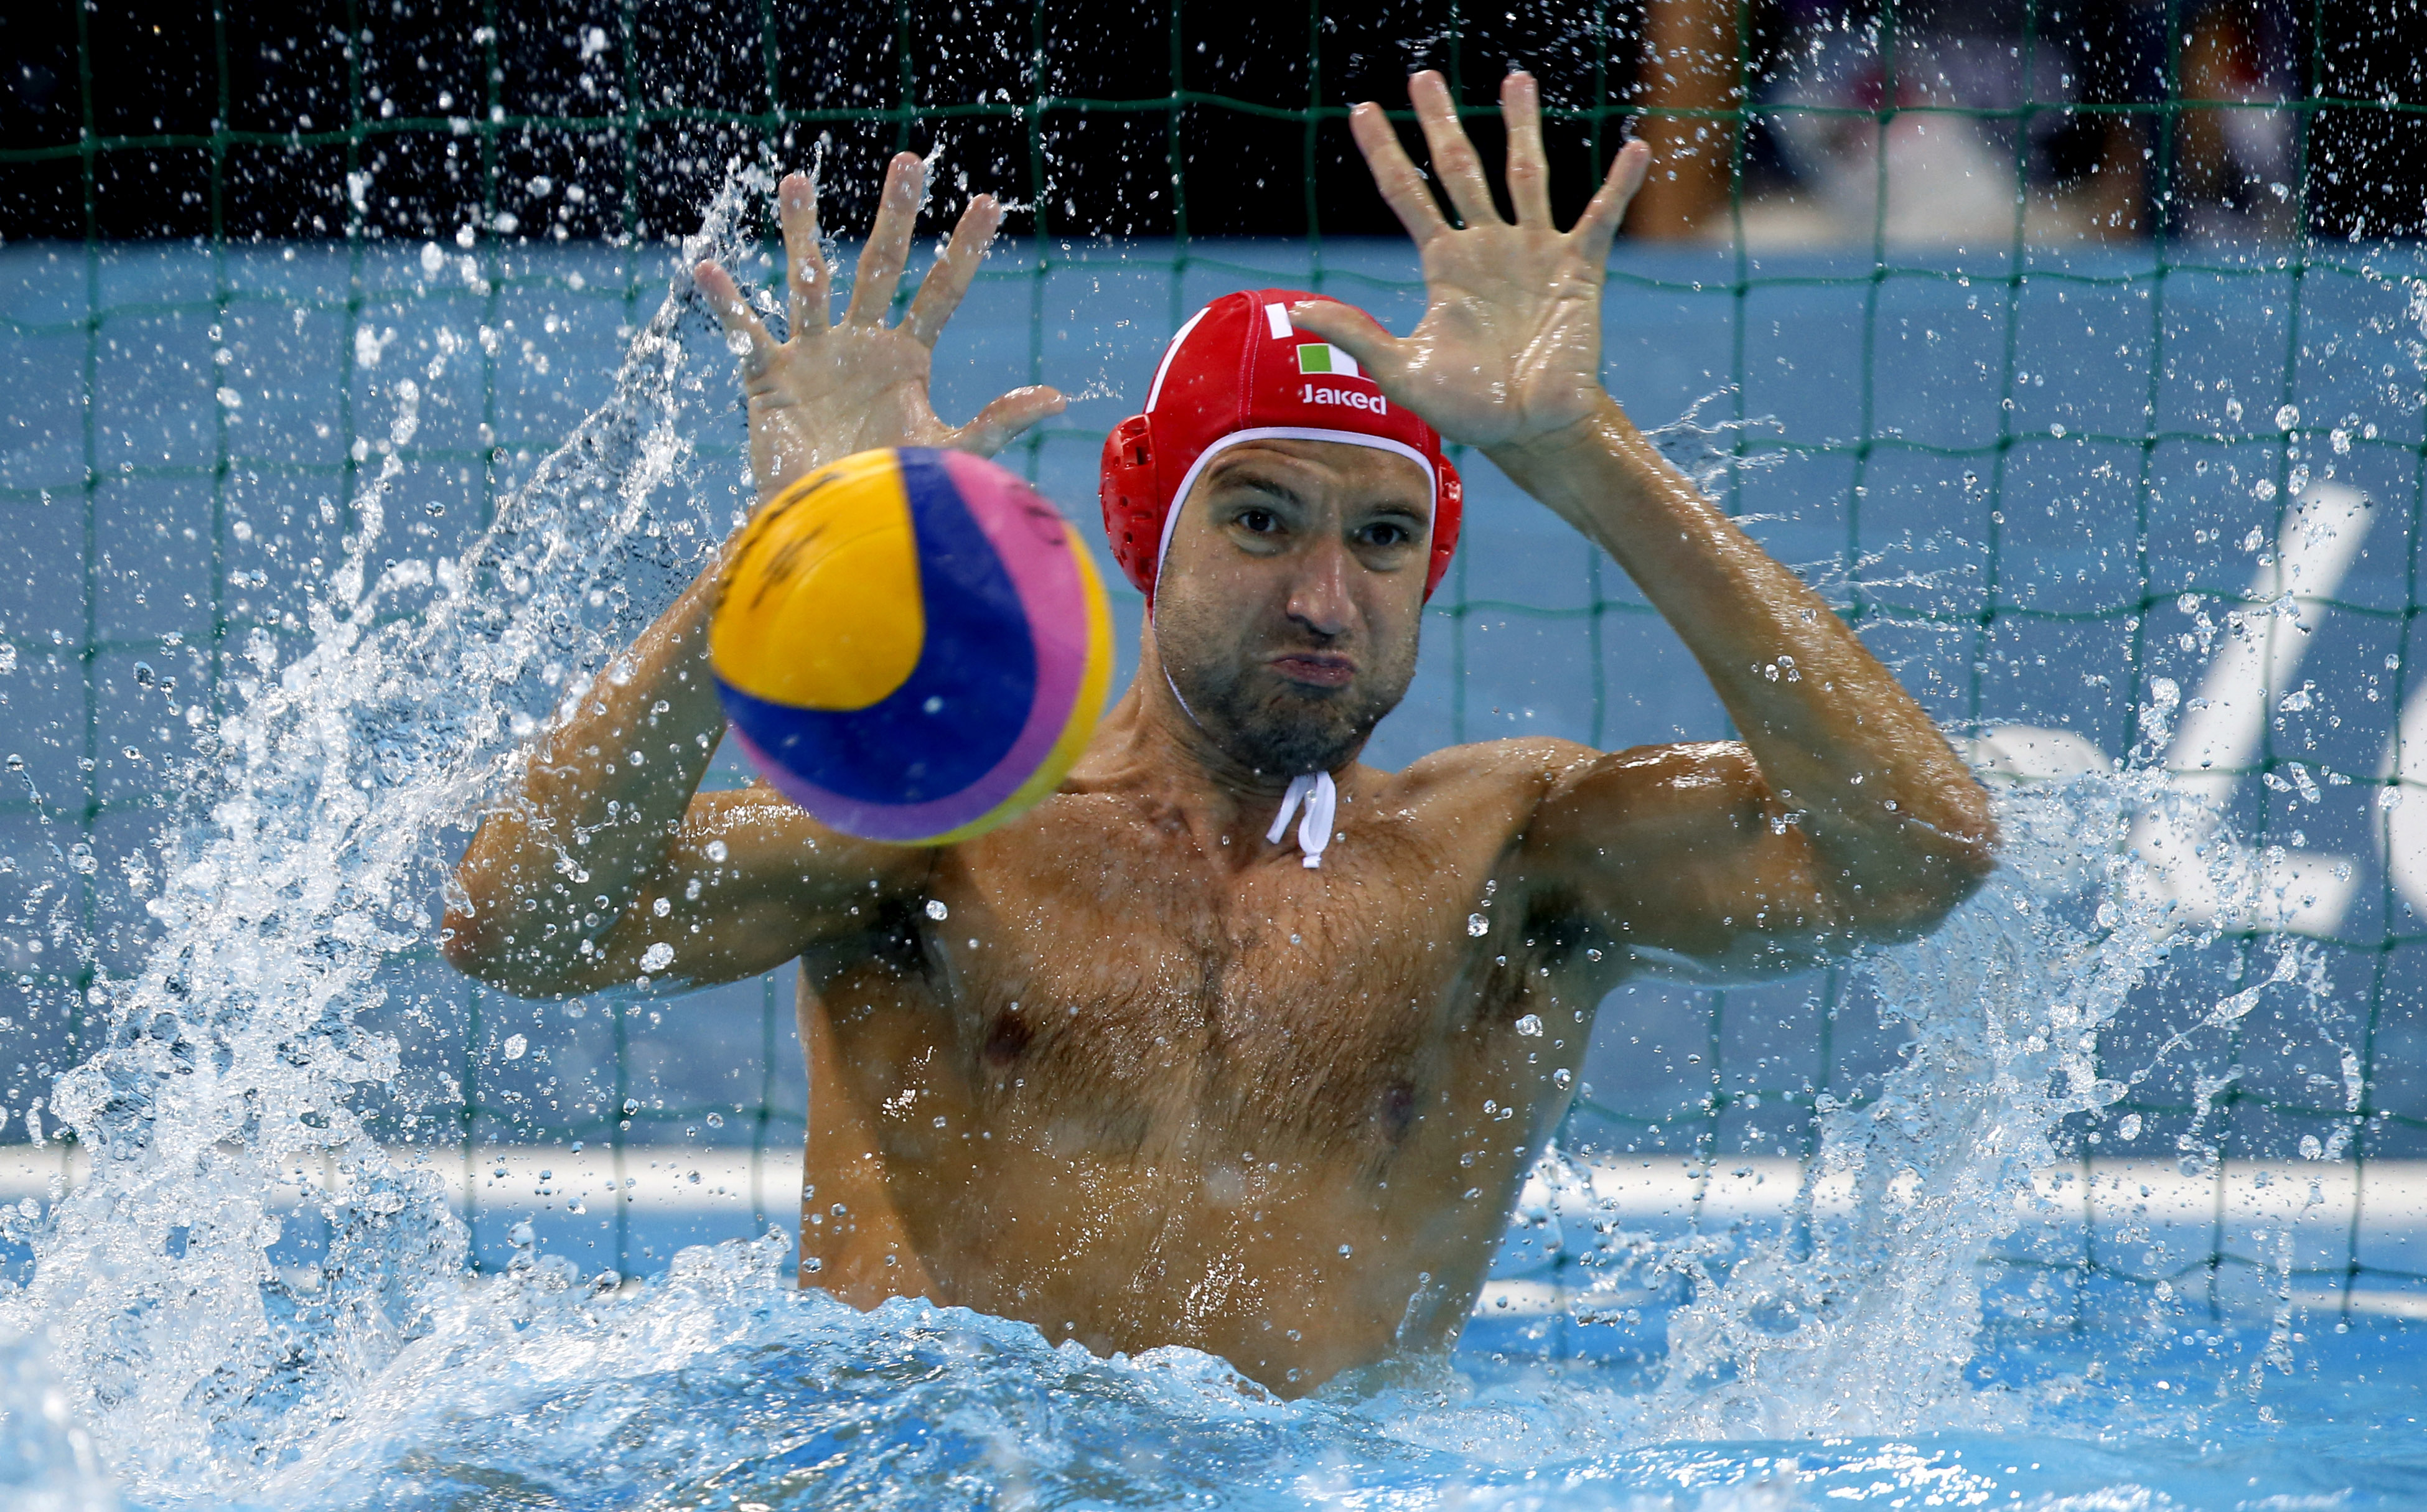 Italy goalkeeper Stefano Tempesti makes a save on a shot by Spain during a preliminary men's water polo match at the 2012 Summer Olympics, Monday, Aug. 6, 2012, in London. (AP Photo/Julio Cortez)